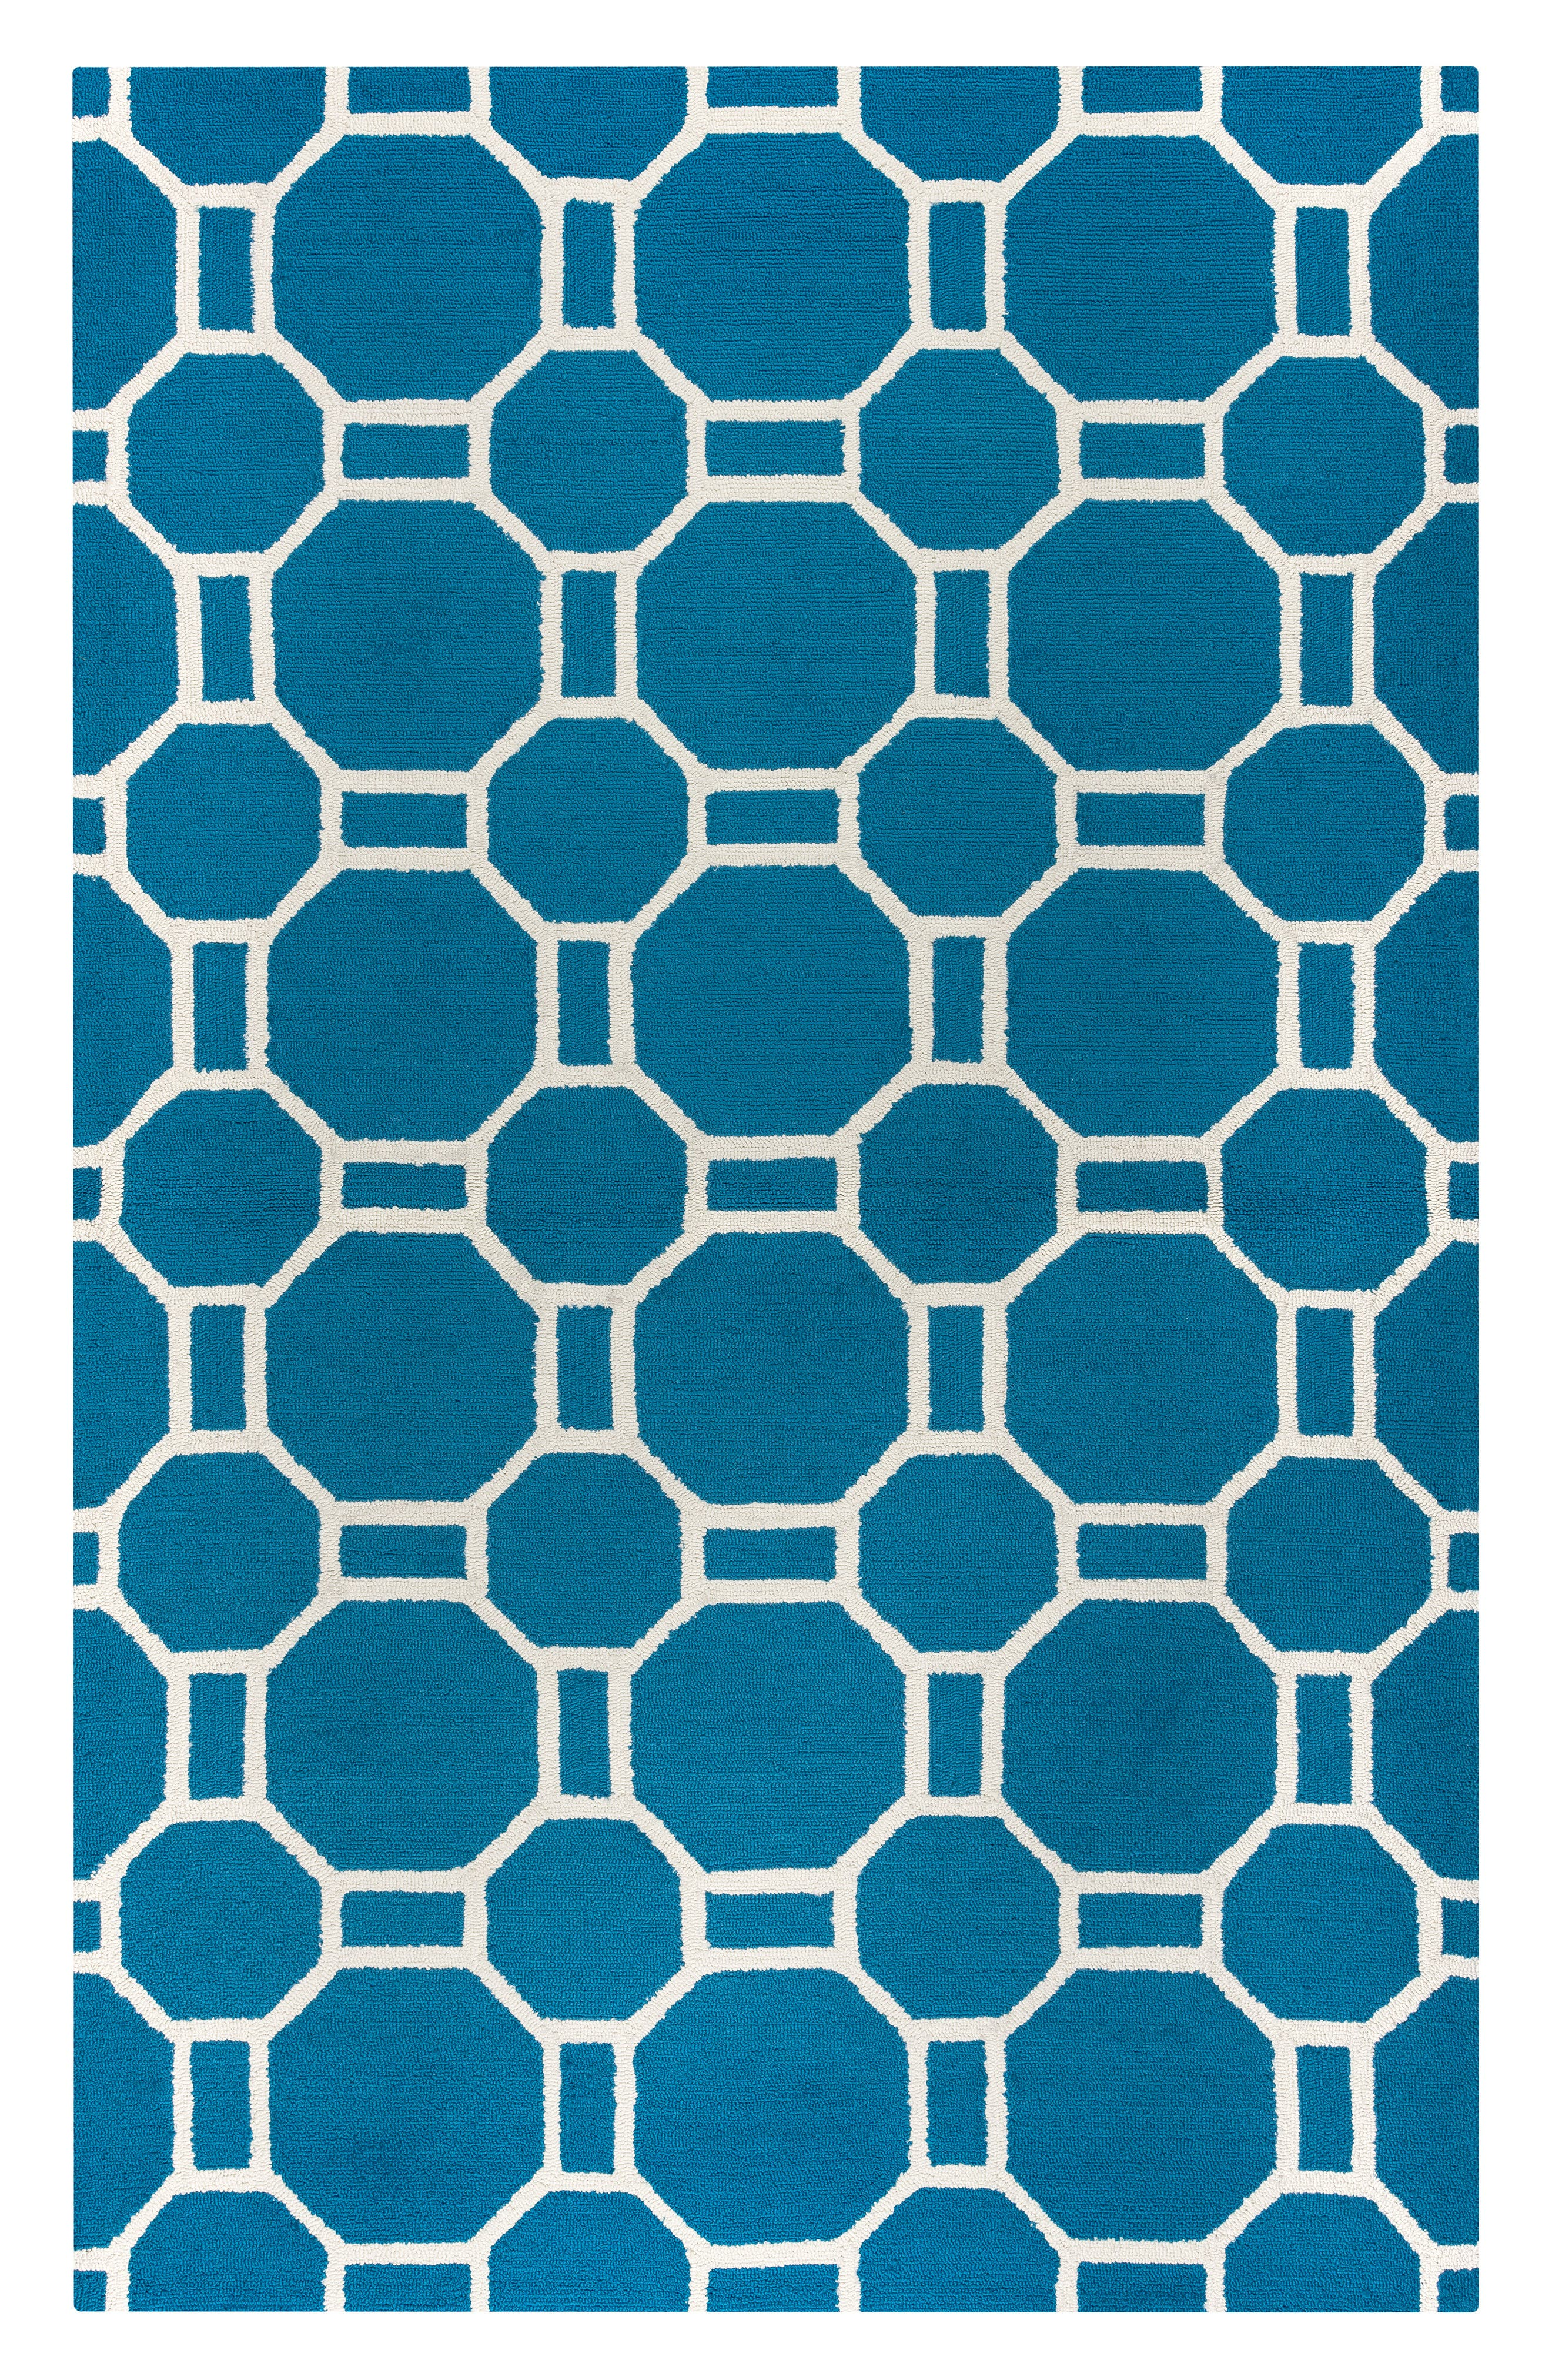 Alternate Image 1 Selected - Rizzy Home Azzura Hill Pearl Rug